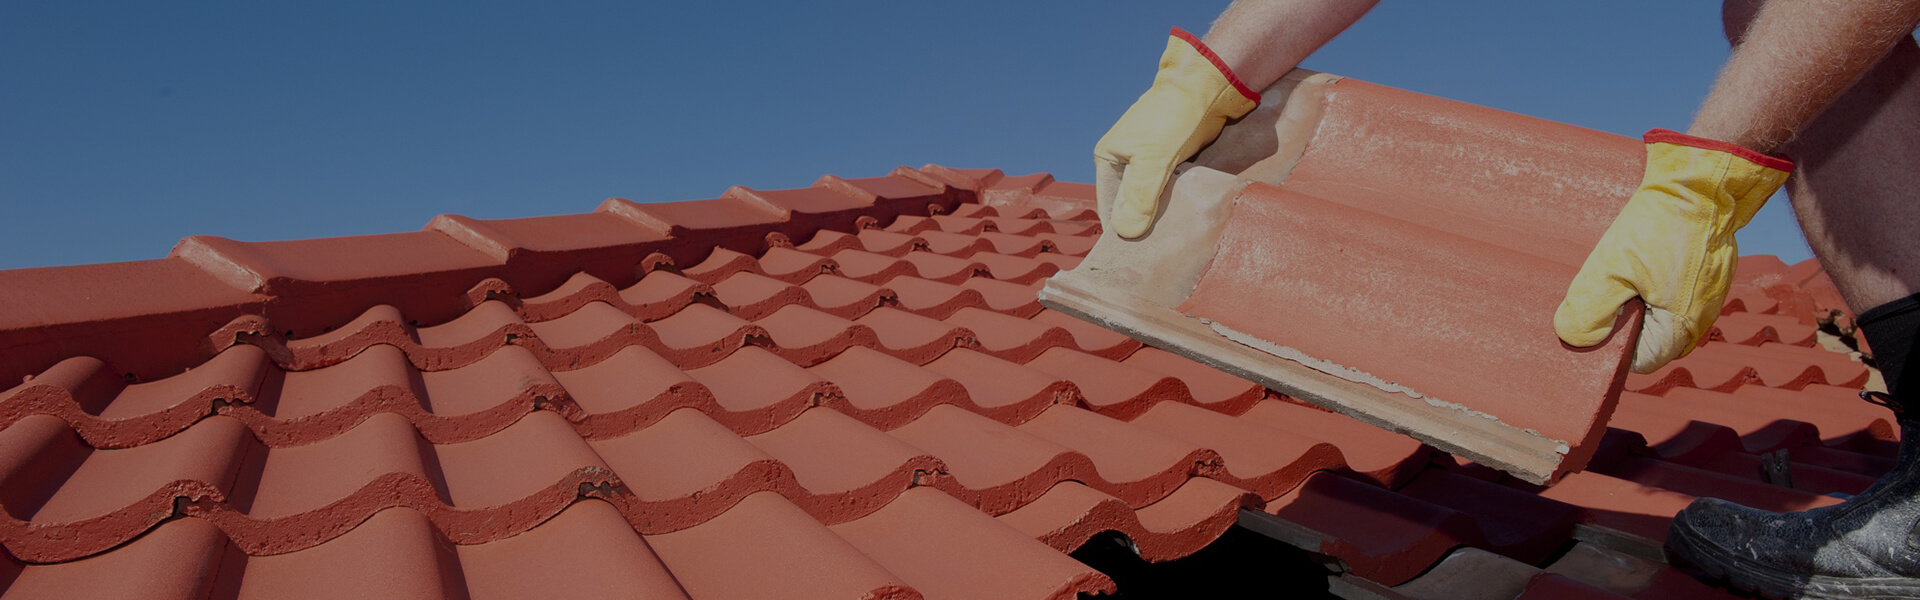 Tile Roofing Services - Terracotta Concrete Roofing Adelaide